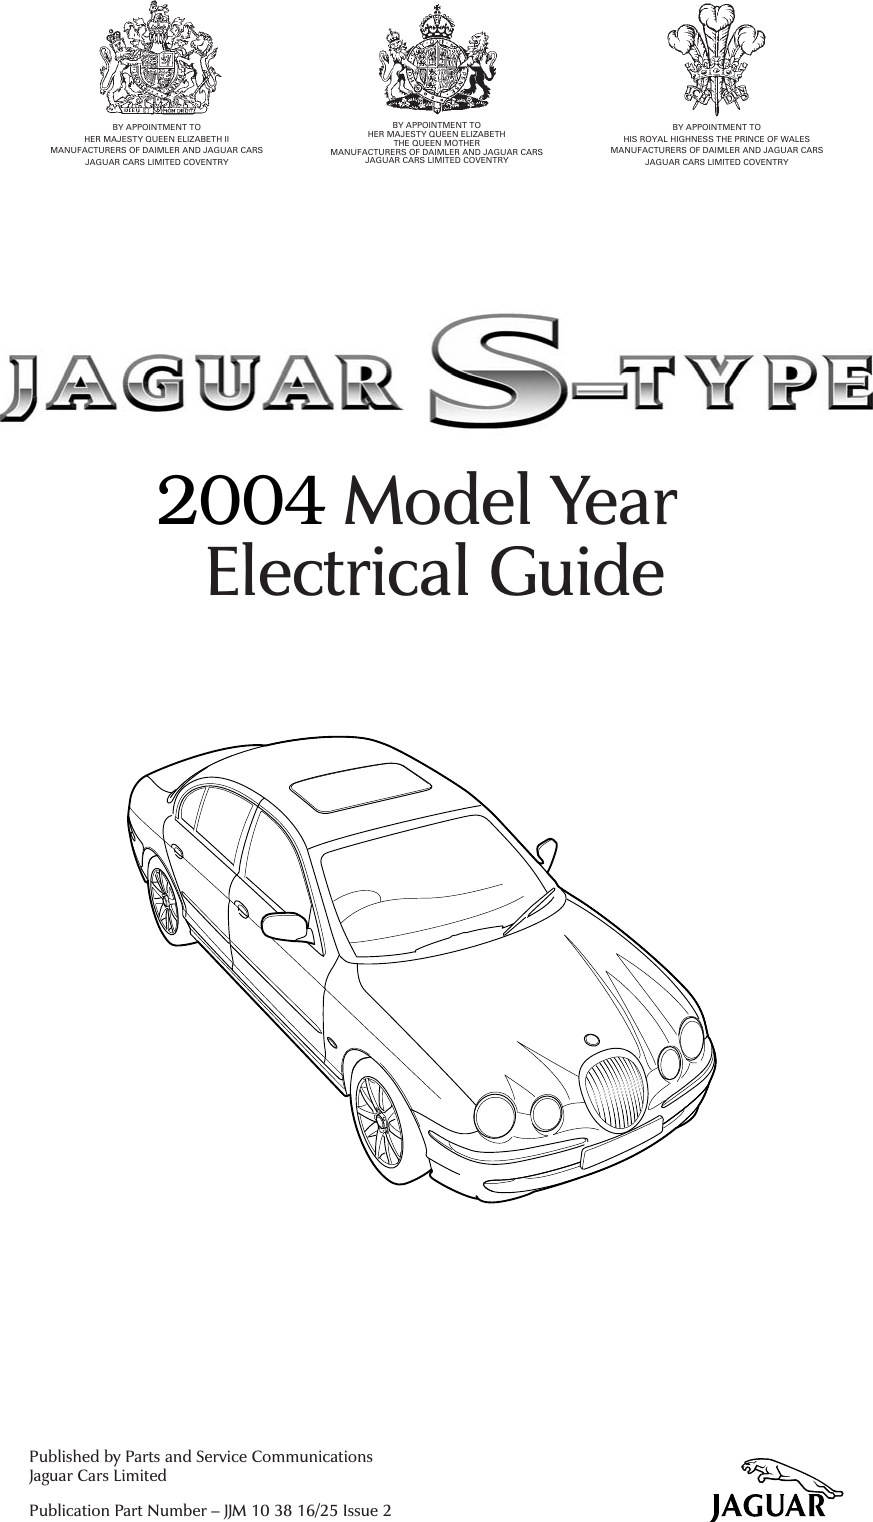 Jaguar S Type 2004 Users Manual X202 02.5/E COVER